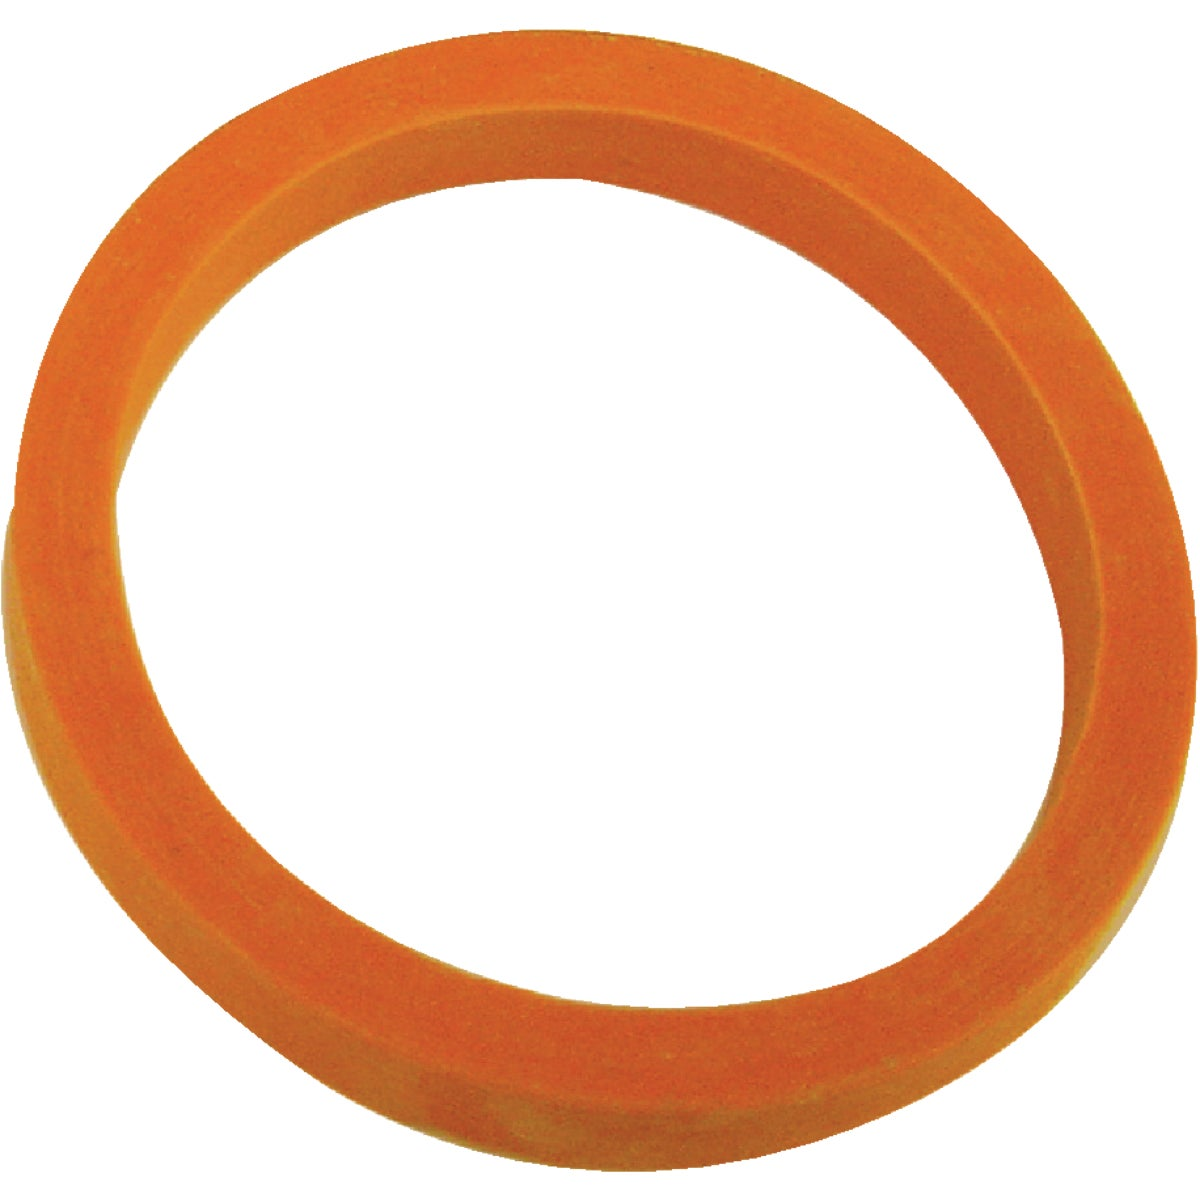 1-1/2X1-1/4 S/JNT WASHER - 36646B by Danco Perfect Match